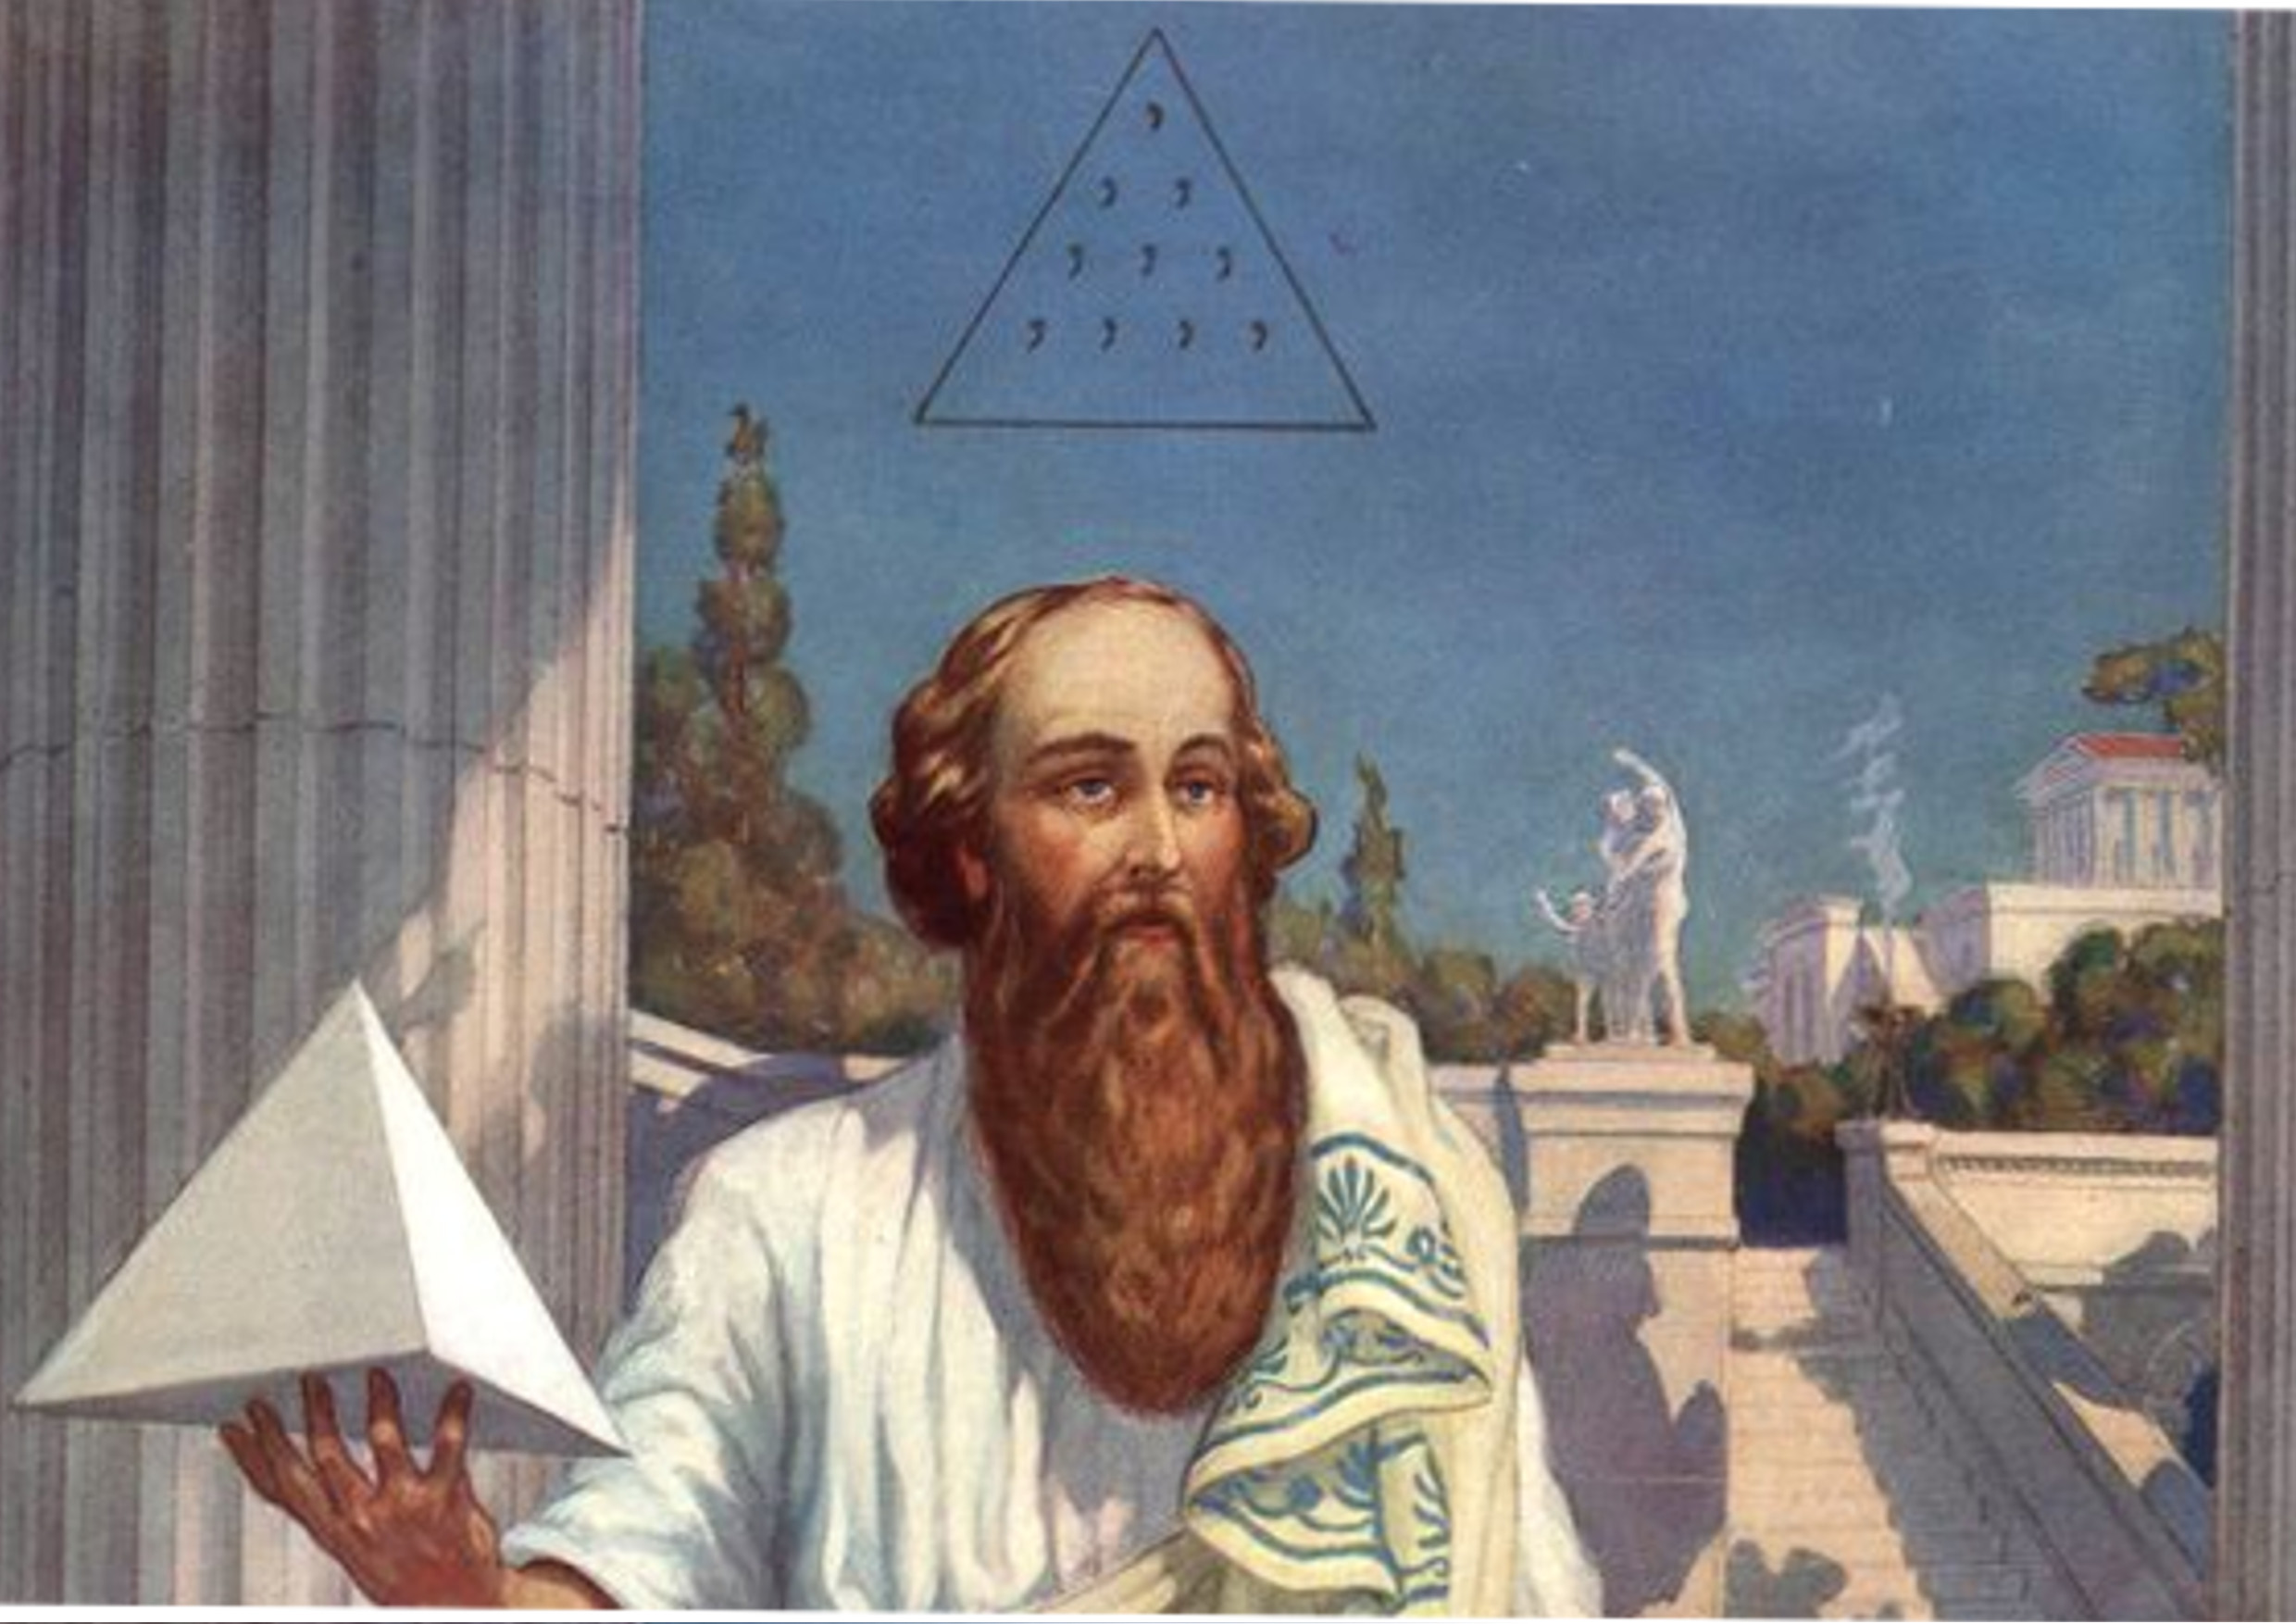 Pythagoras, detail from Knapp c. 1926. Notice the Hebrew 'Tetractys' floating above his head.